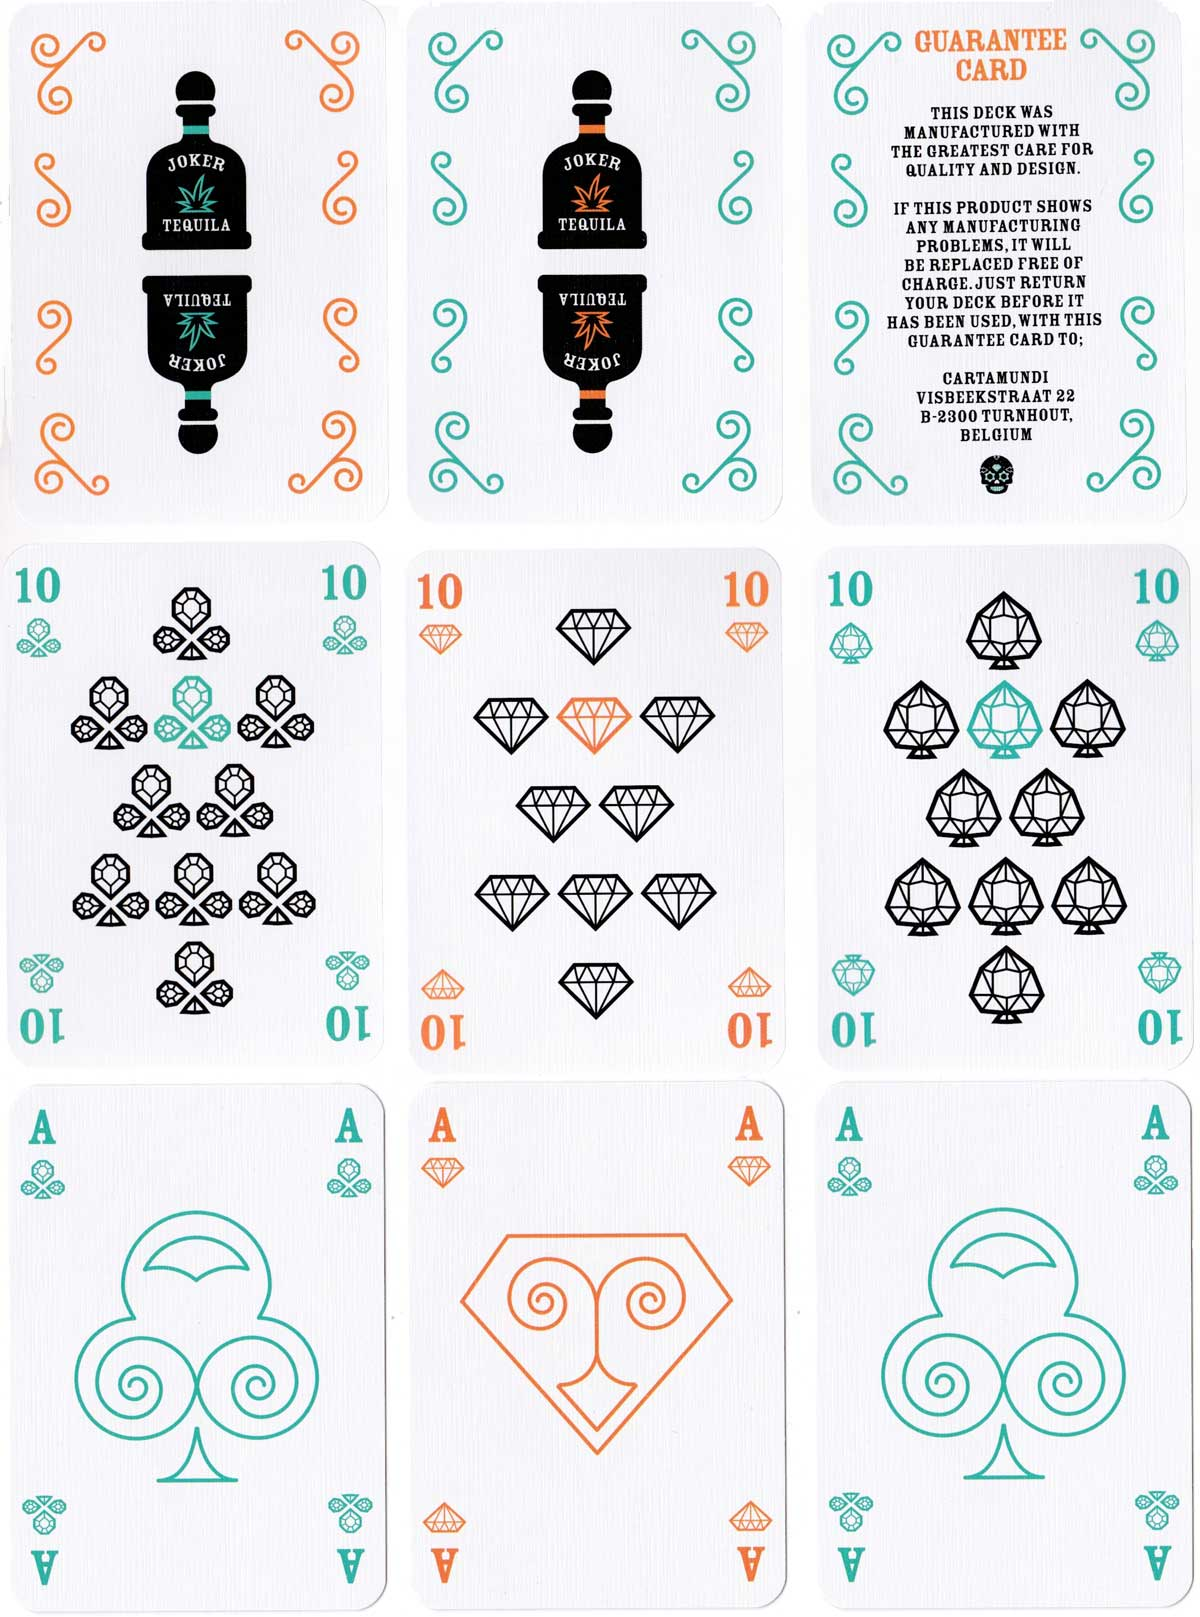 Calavera playing cards designed by Jirs Huygen for Cartamundi, 2015